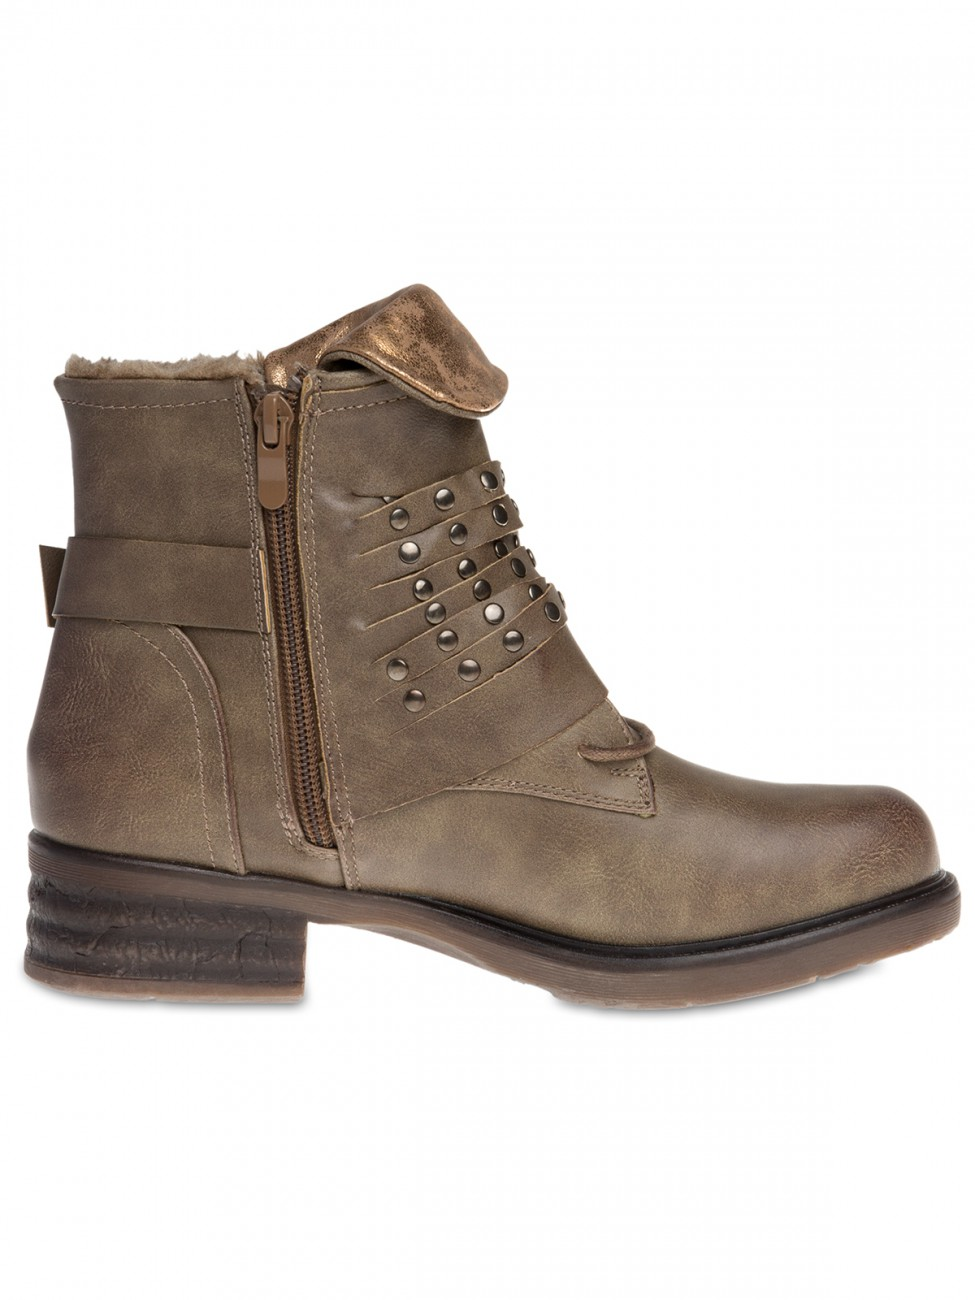 damen vintage biker ankle boots stiefeletten schwarz grau khaki 37 38 39 40 41 ebay. Black Bedroom Furniture Sets. Home Design Ideas